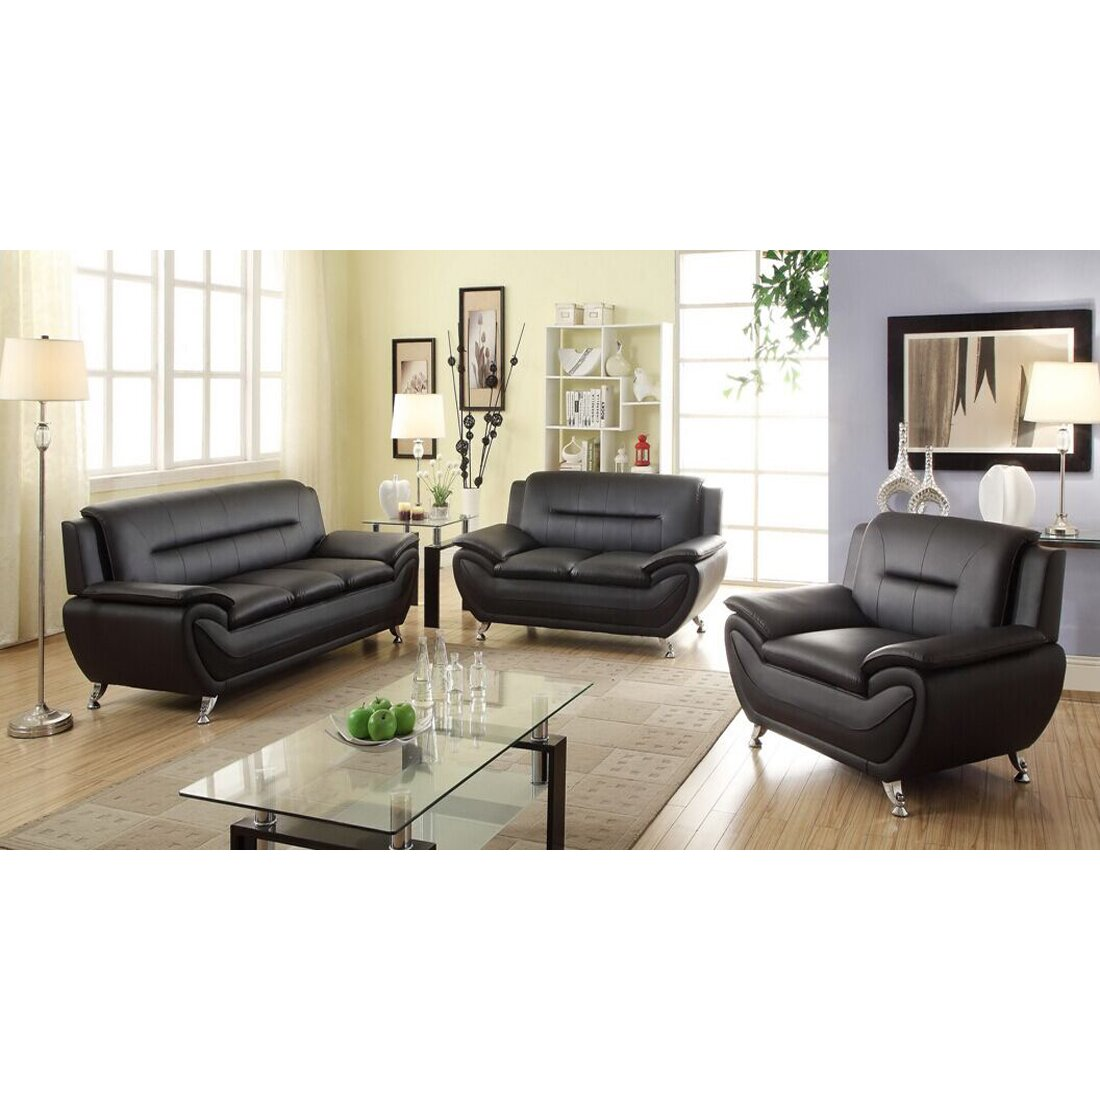 living in style sophie living room loveseat reviews